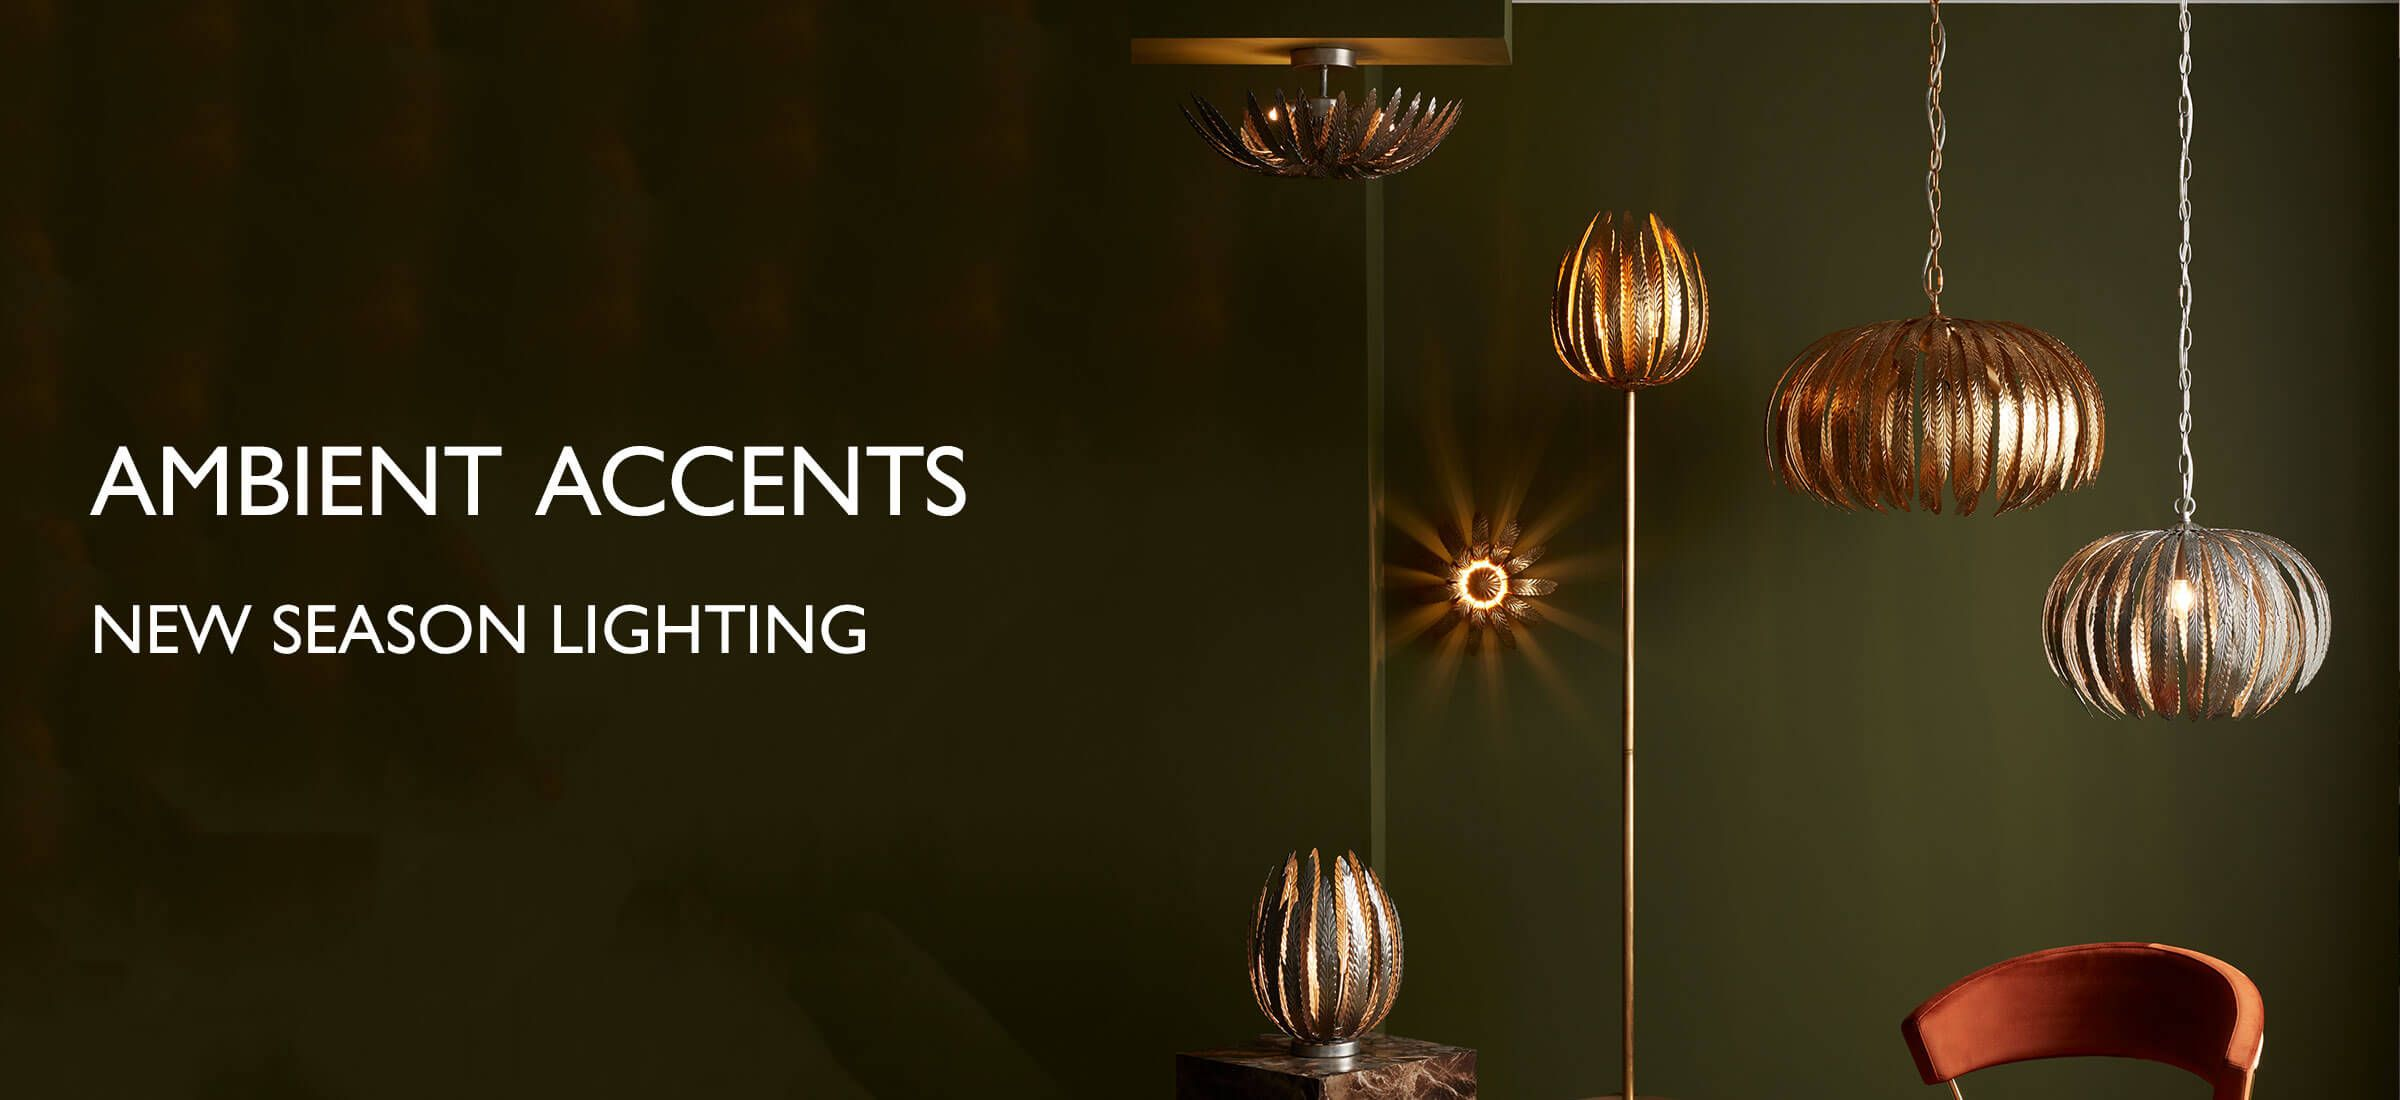 Ambient accents